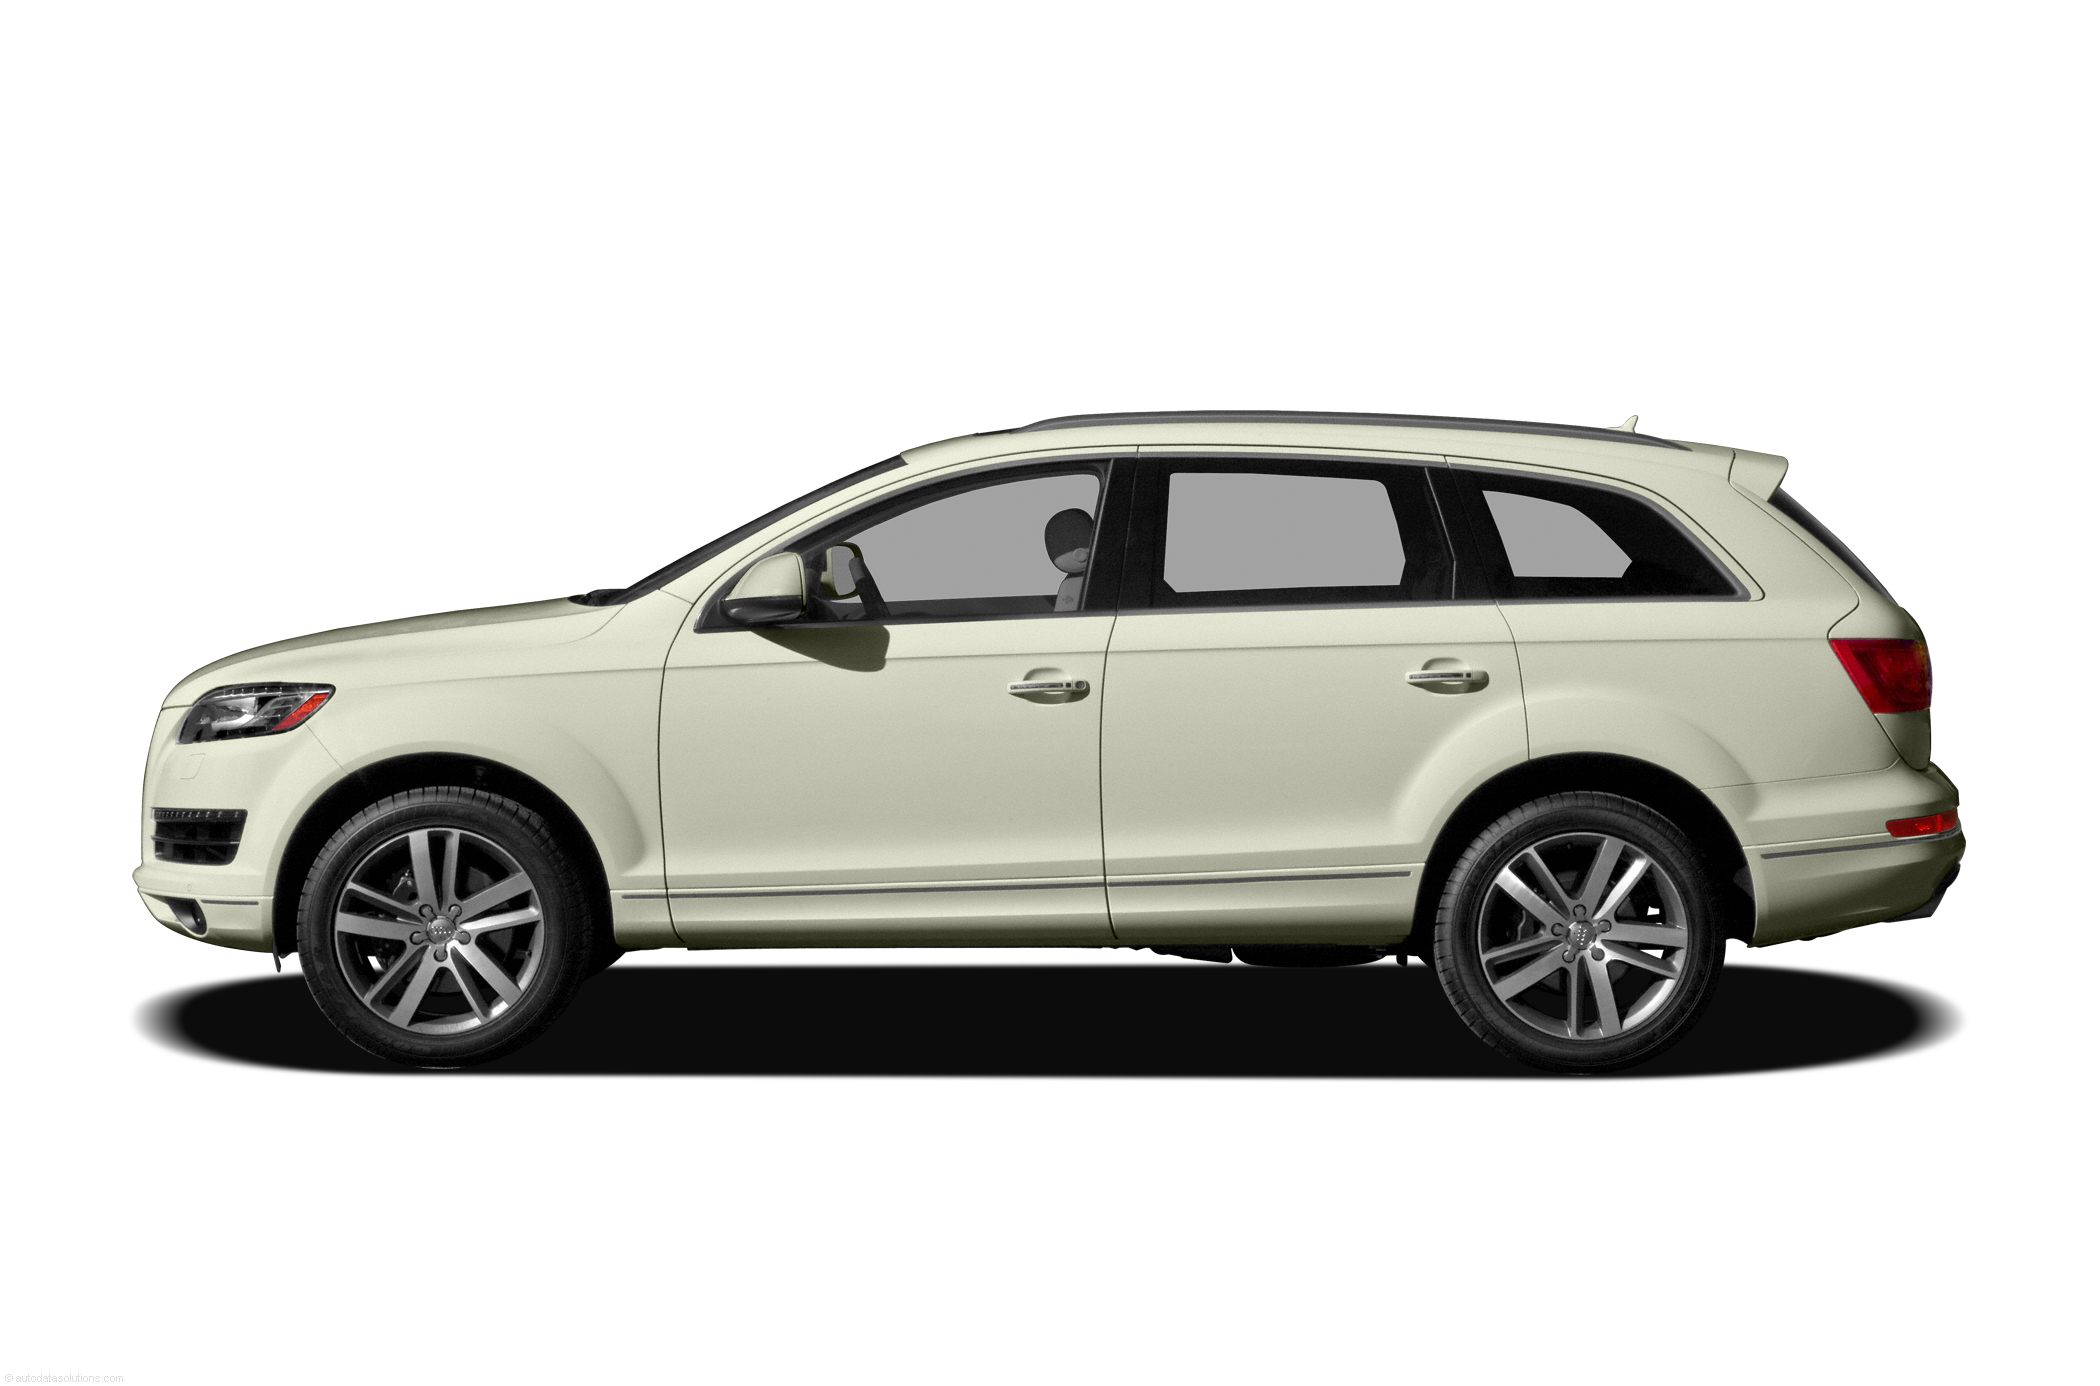 2011-Audi-Q7-SUV-3.0T-Premium-4dr-All-wheel-Drive-Sport-Utility-Exterior-Profile.png